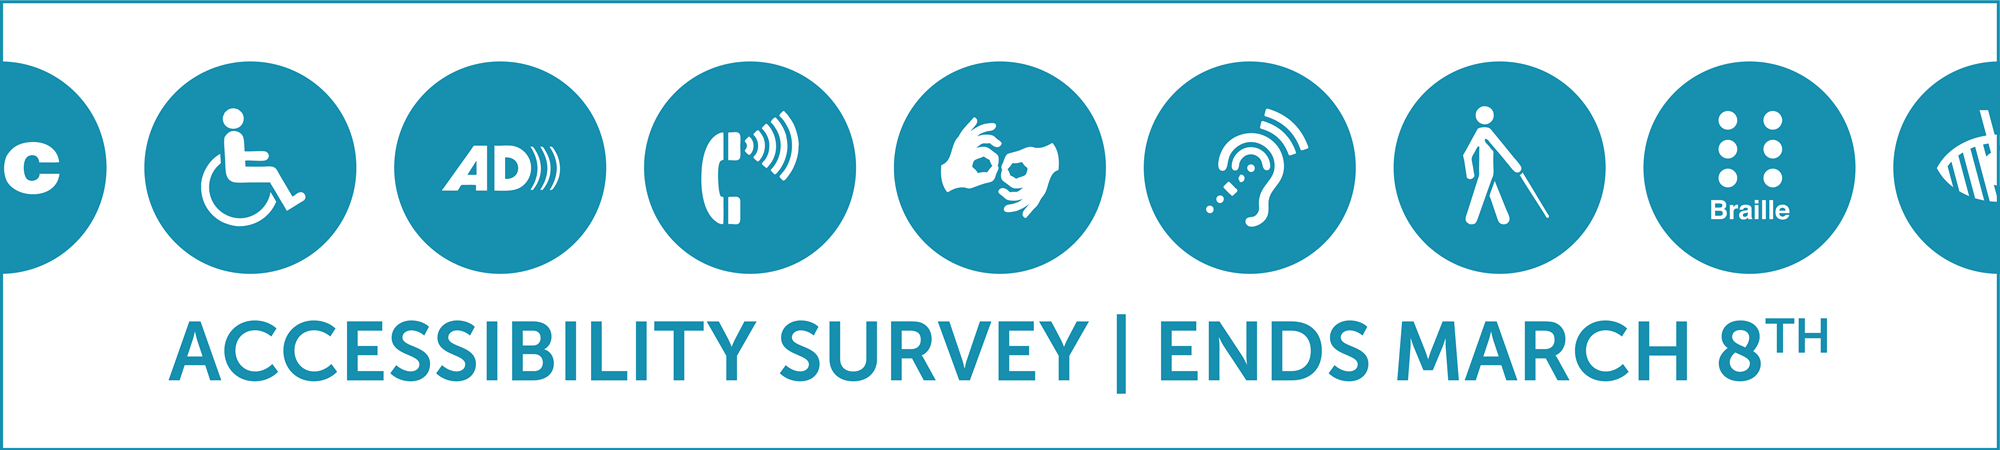 Banner with various accessibility-related icons; click to take the 2019 ADA/Accessibility Survey